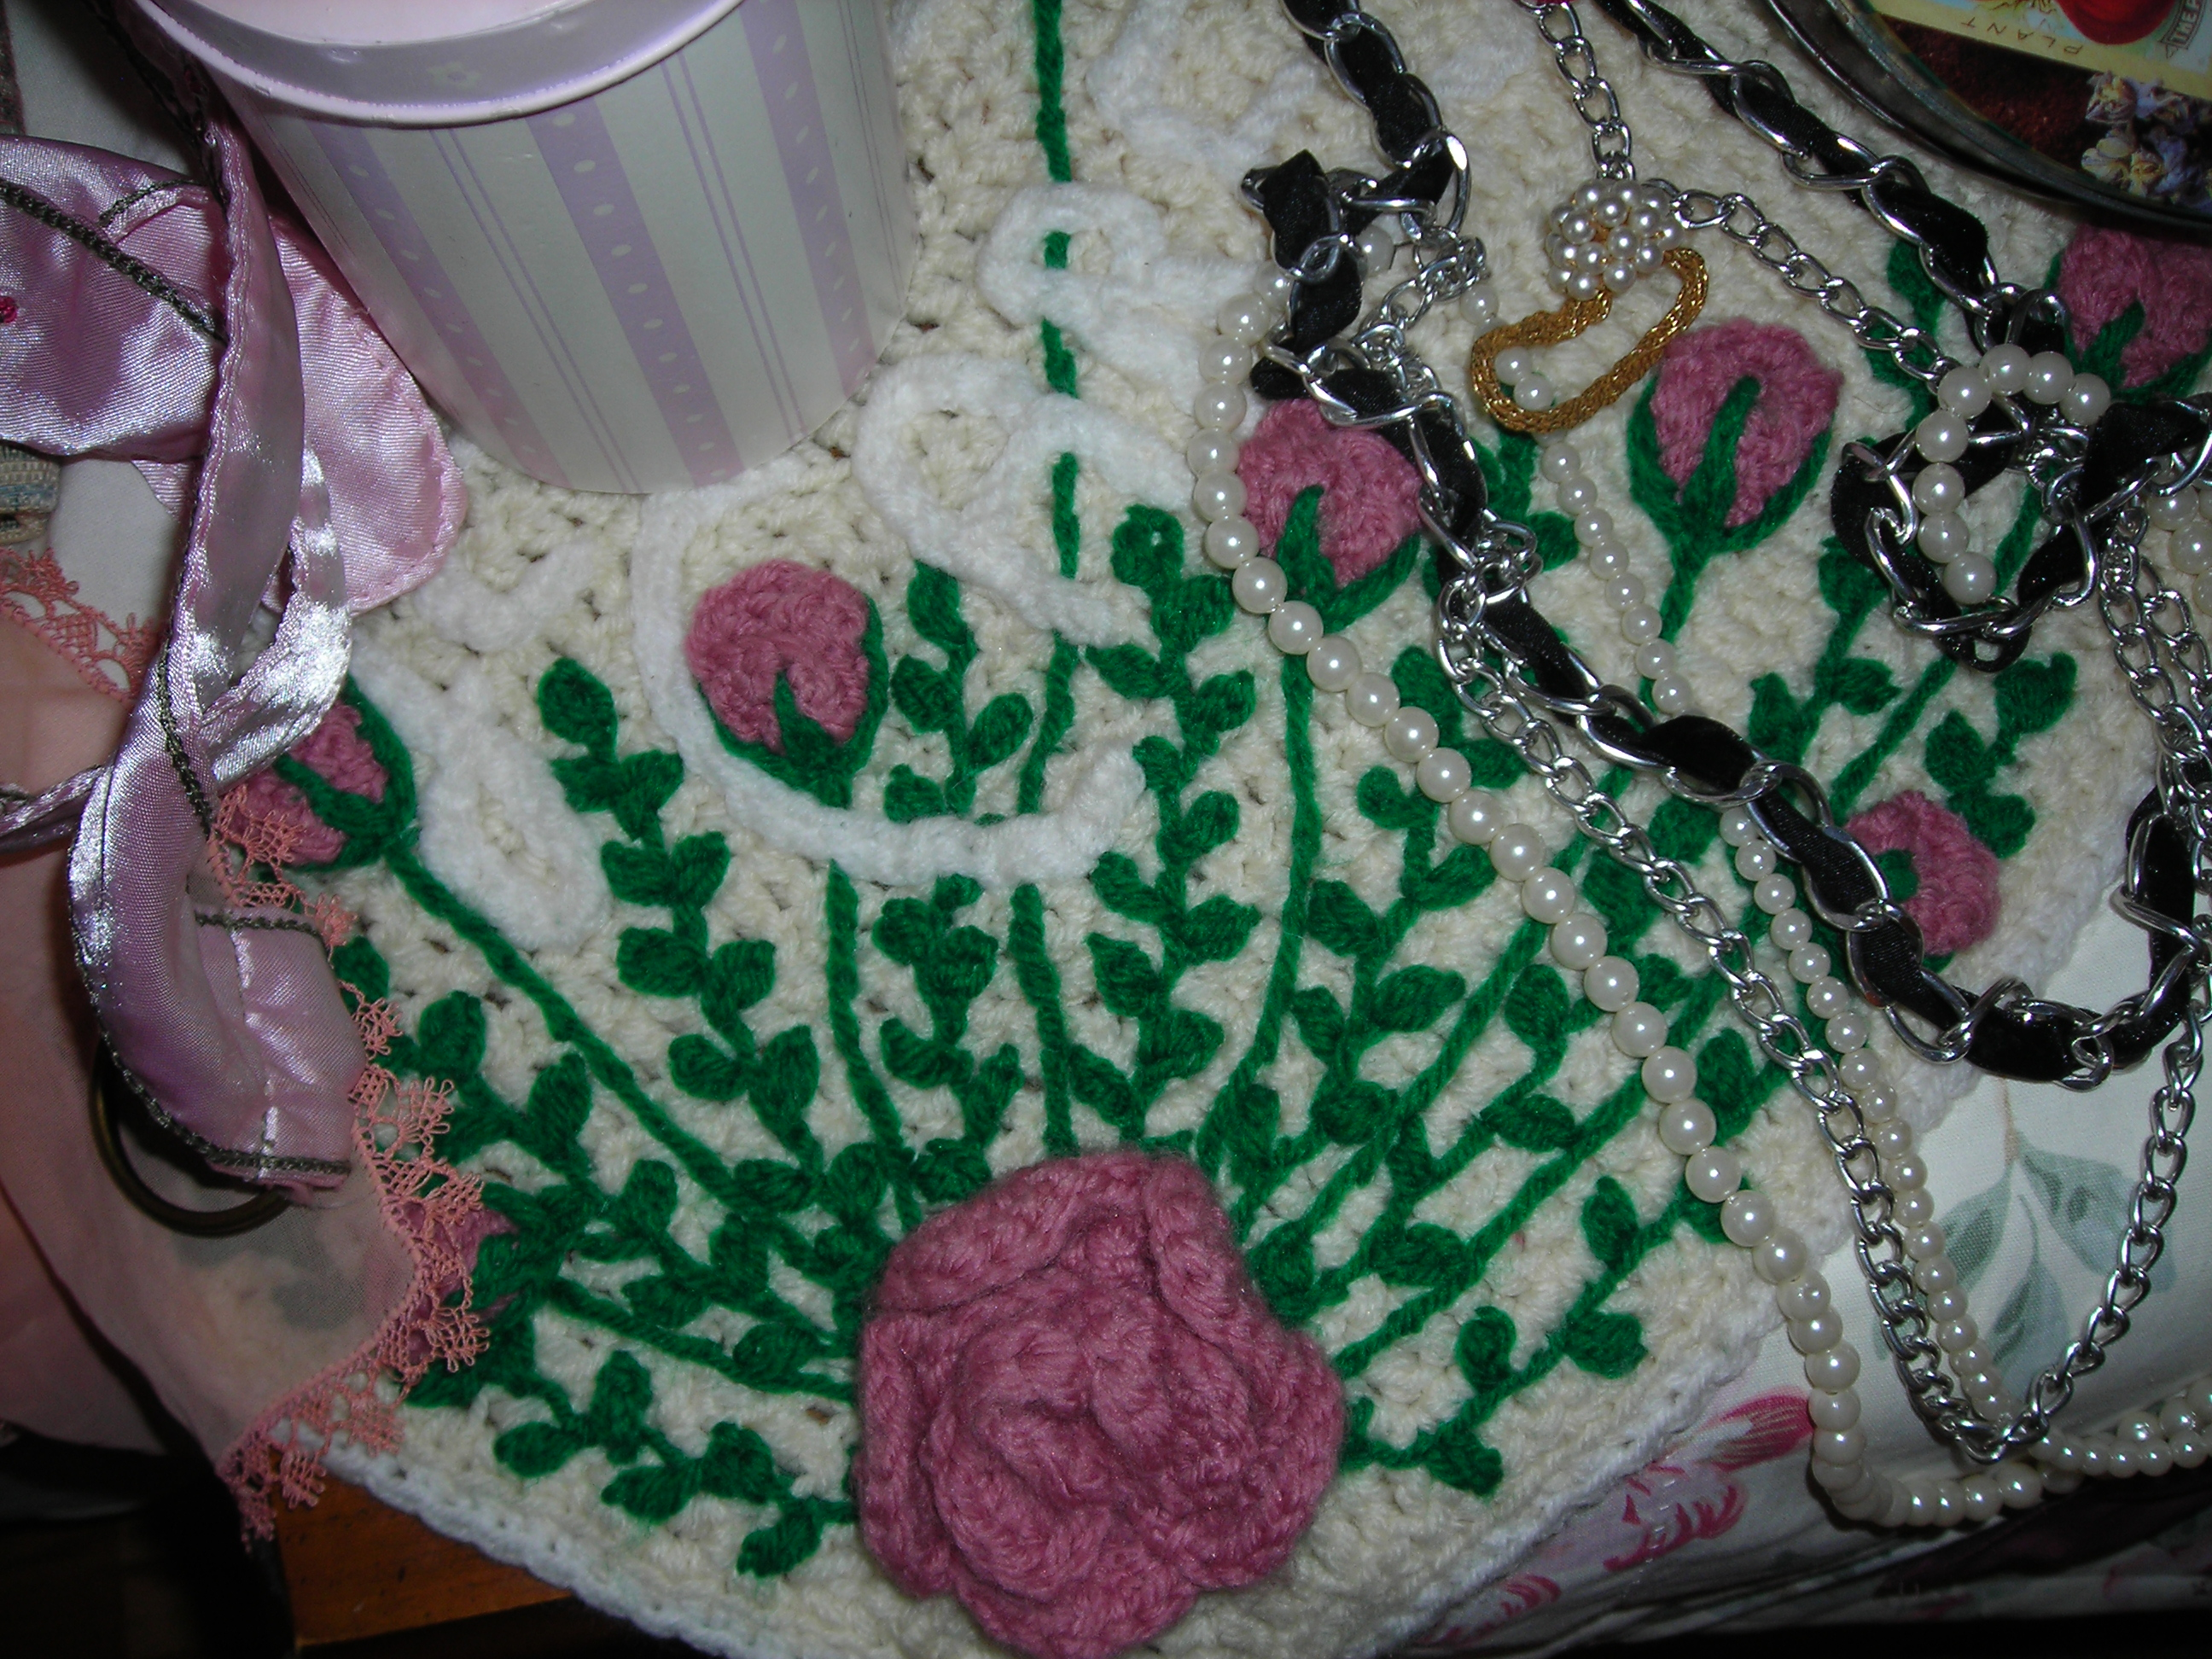 Crocheted pretty. It says 'Jesus Cares', but I like the pink roses on it. I mean, I KNOW Jesus cares ... yikes.